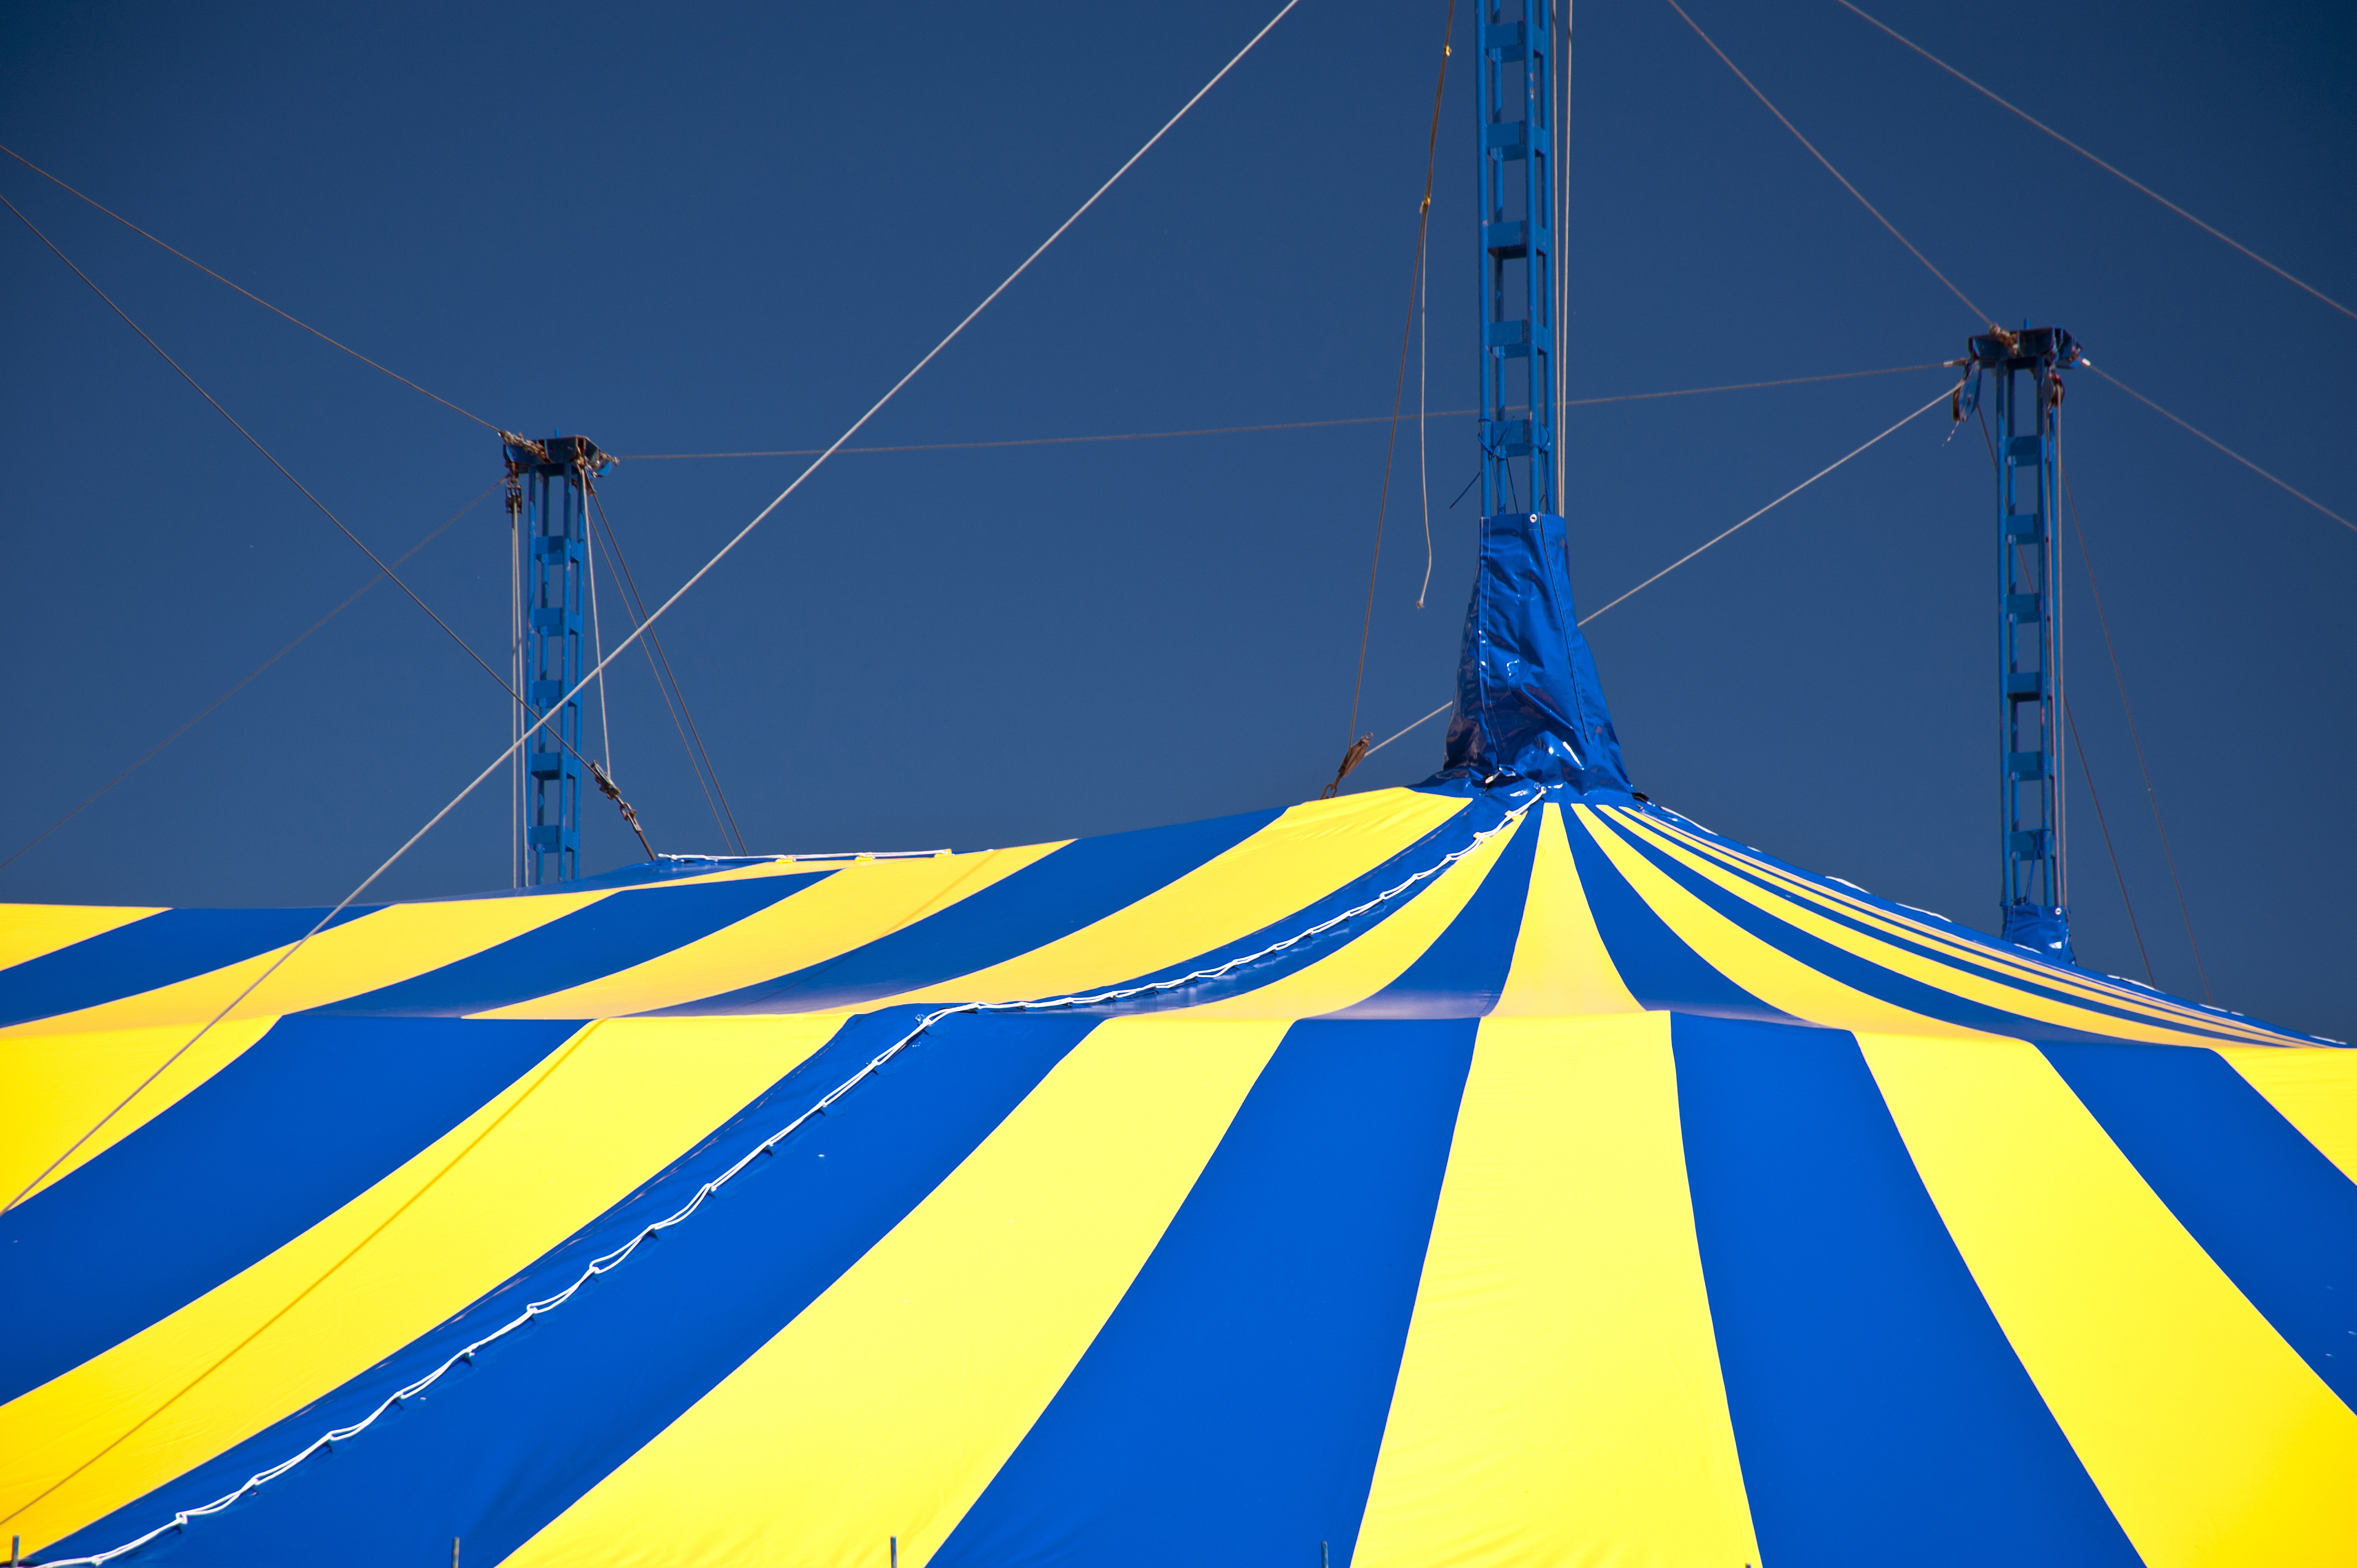 Cover image for  article: Stuart Elliott: As Circus Folds Its Tent, Marketing Executives Look Back